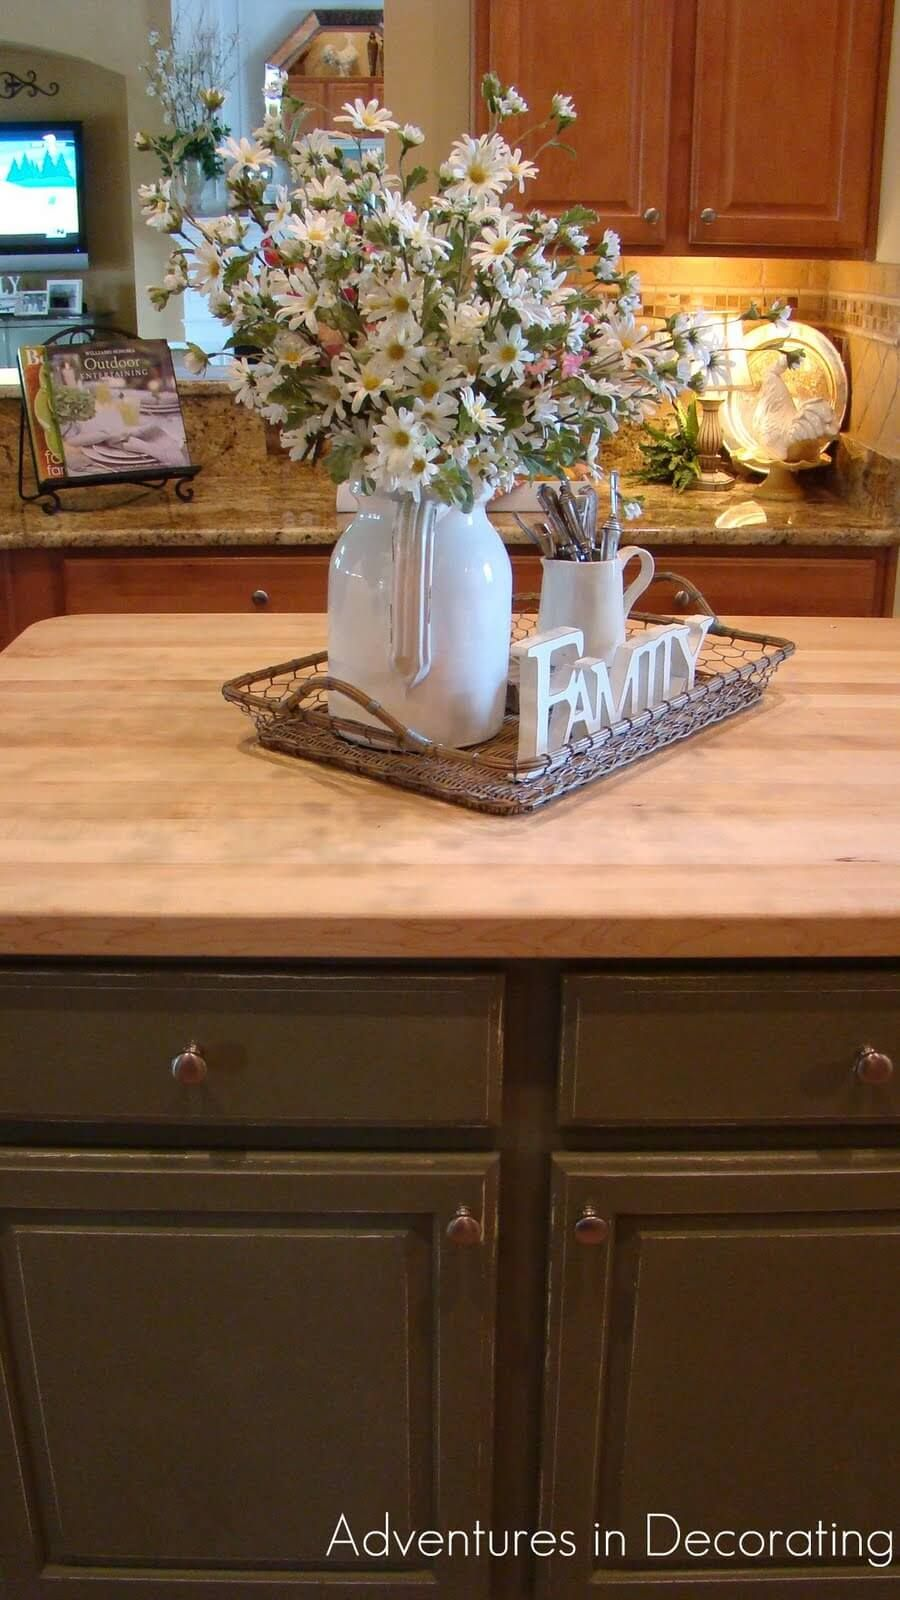 Imaginecozy Staging A Kitchen: Warm And Cozy Family Tray